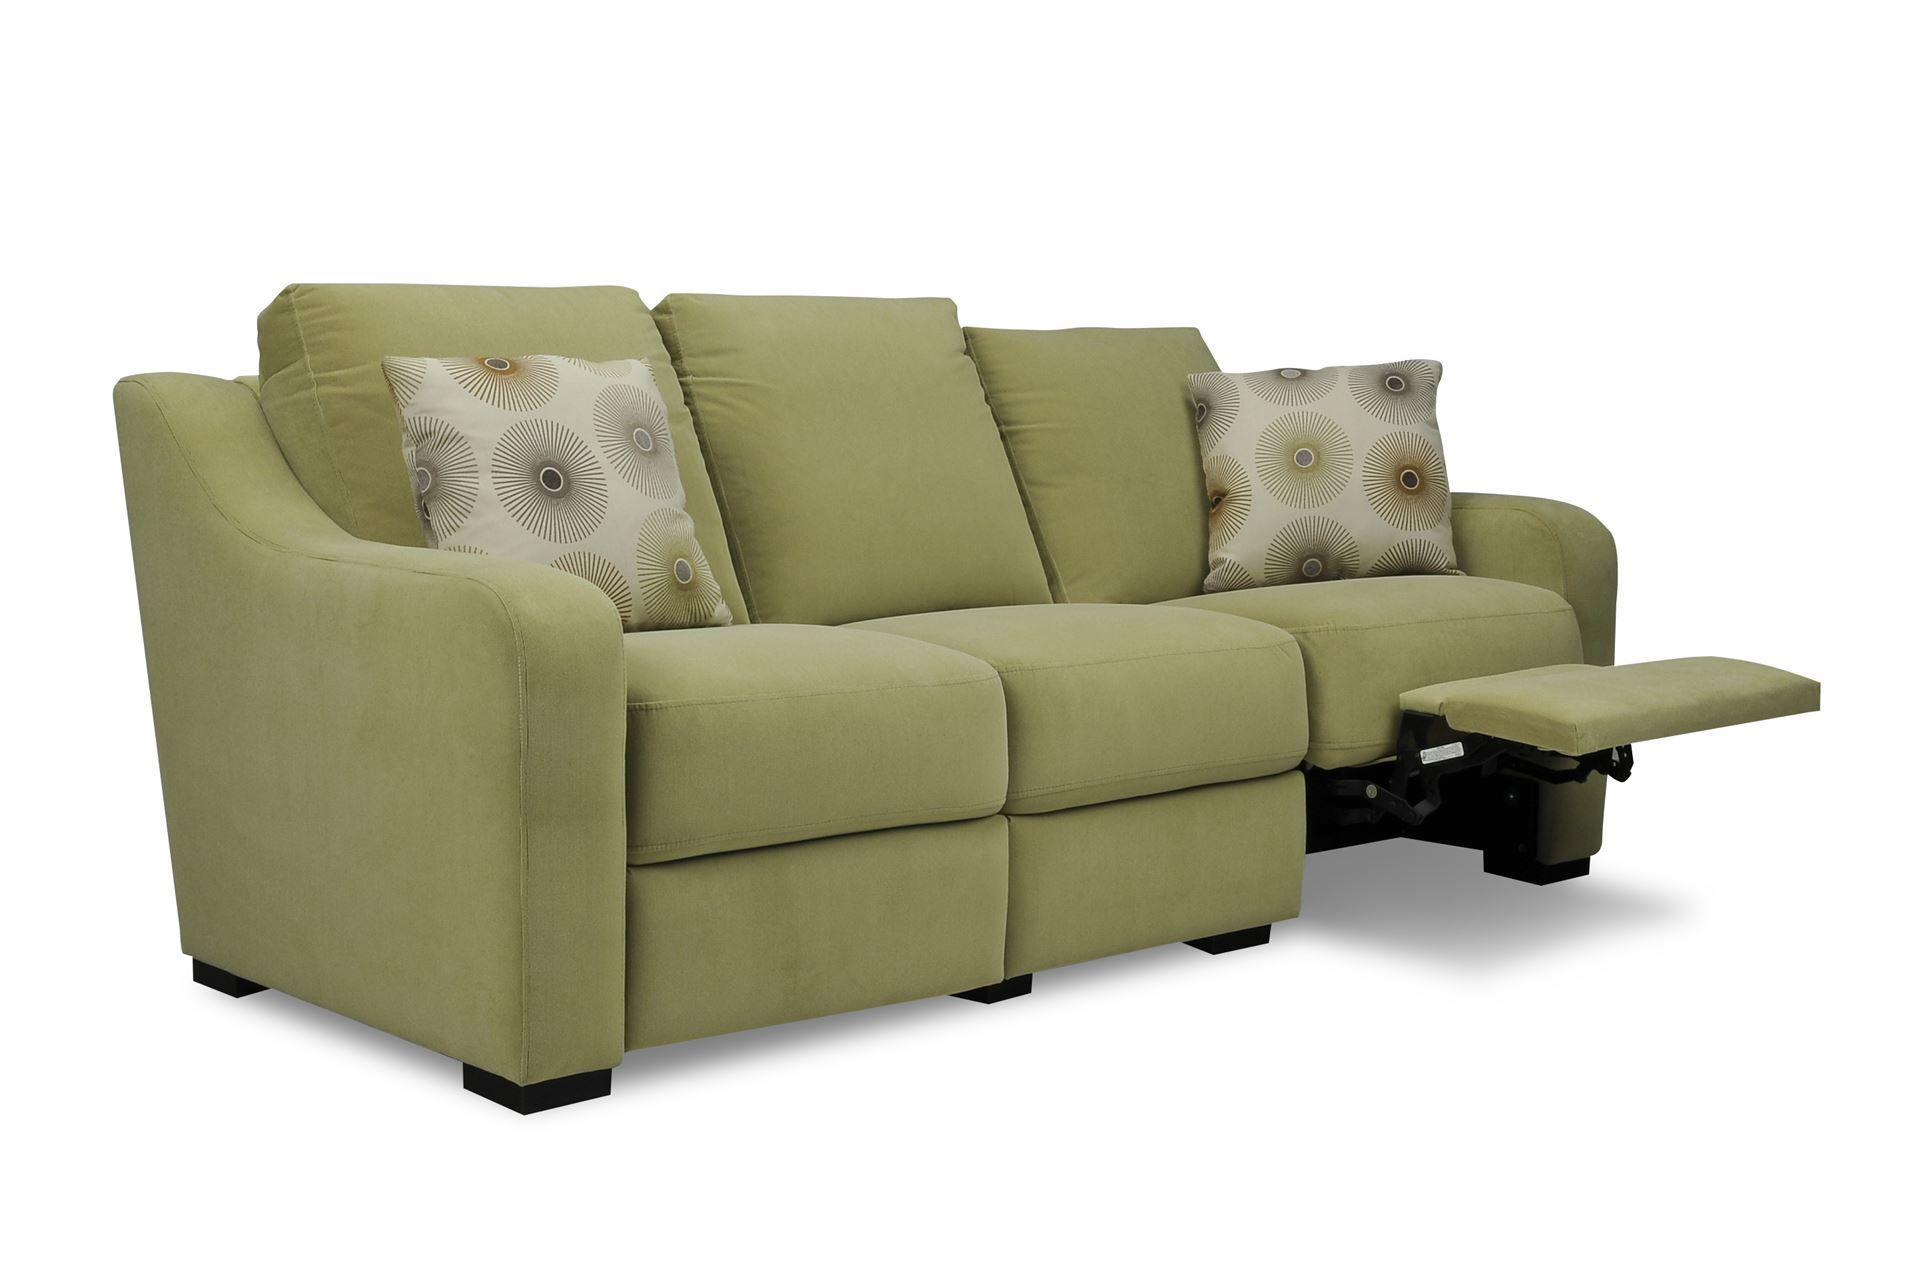 Preloadastoria Fabric Dual Reclining Sofa Not This Color